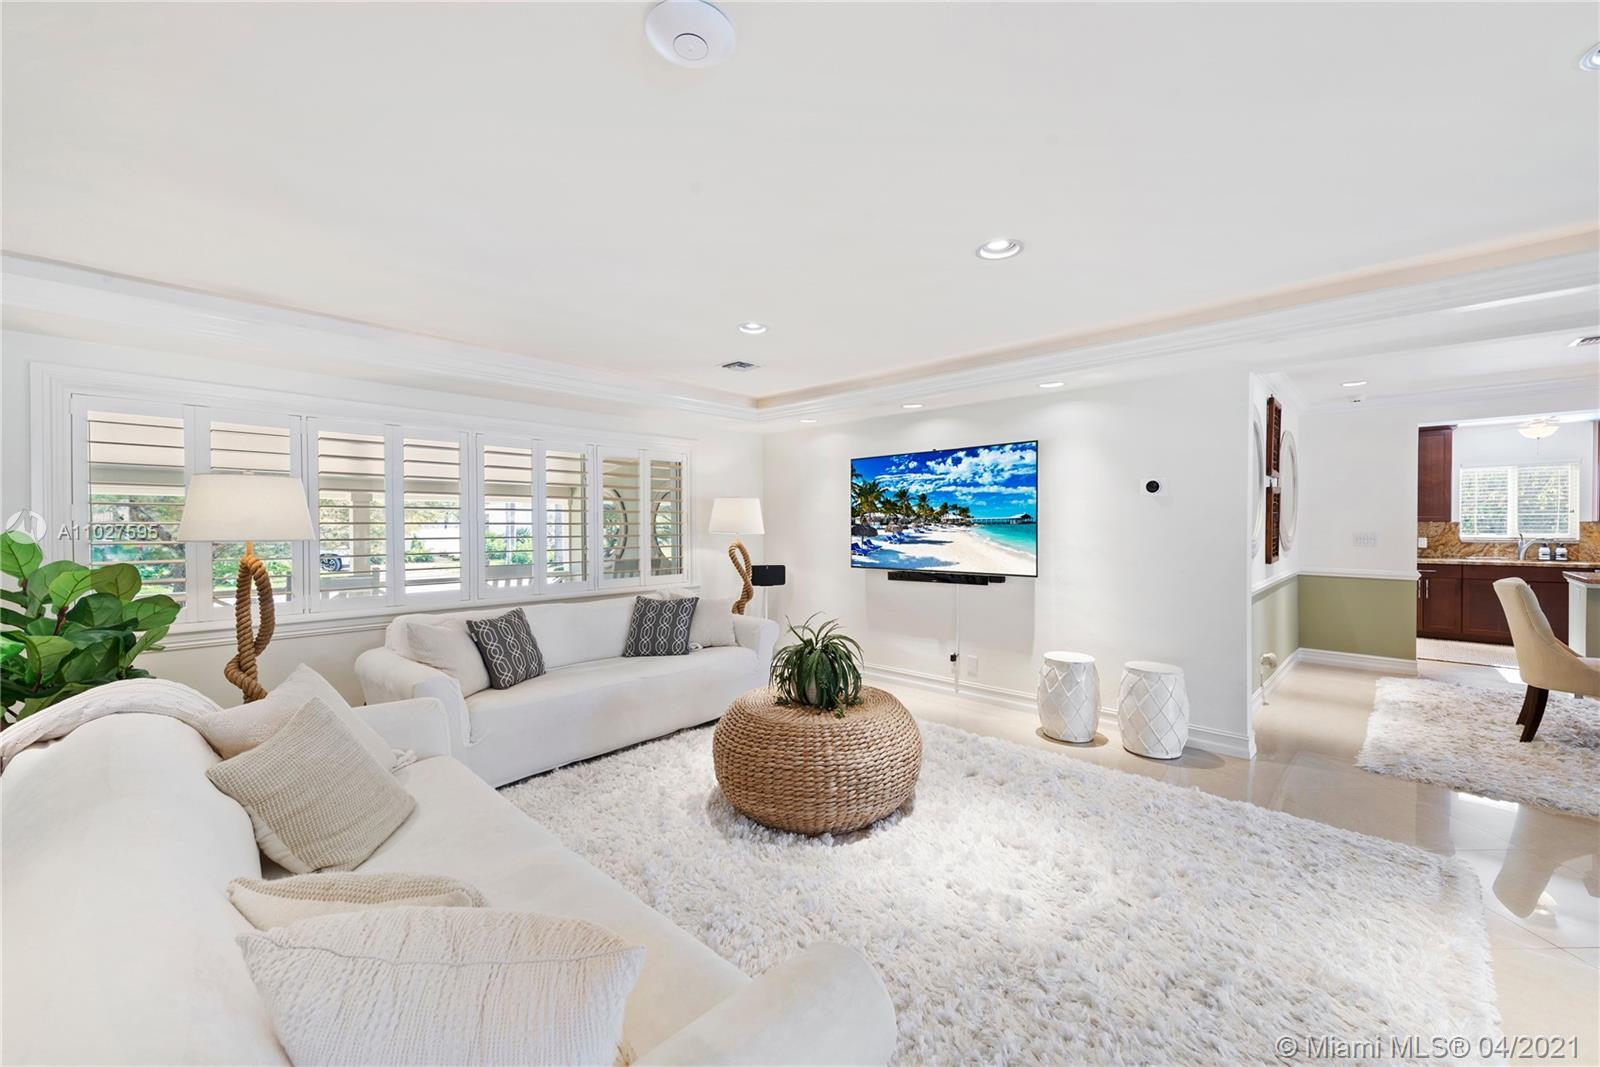 Welcome to one of East Fort Lauderdale's most prestigious neighborhoods, minutes away from the Intra